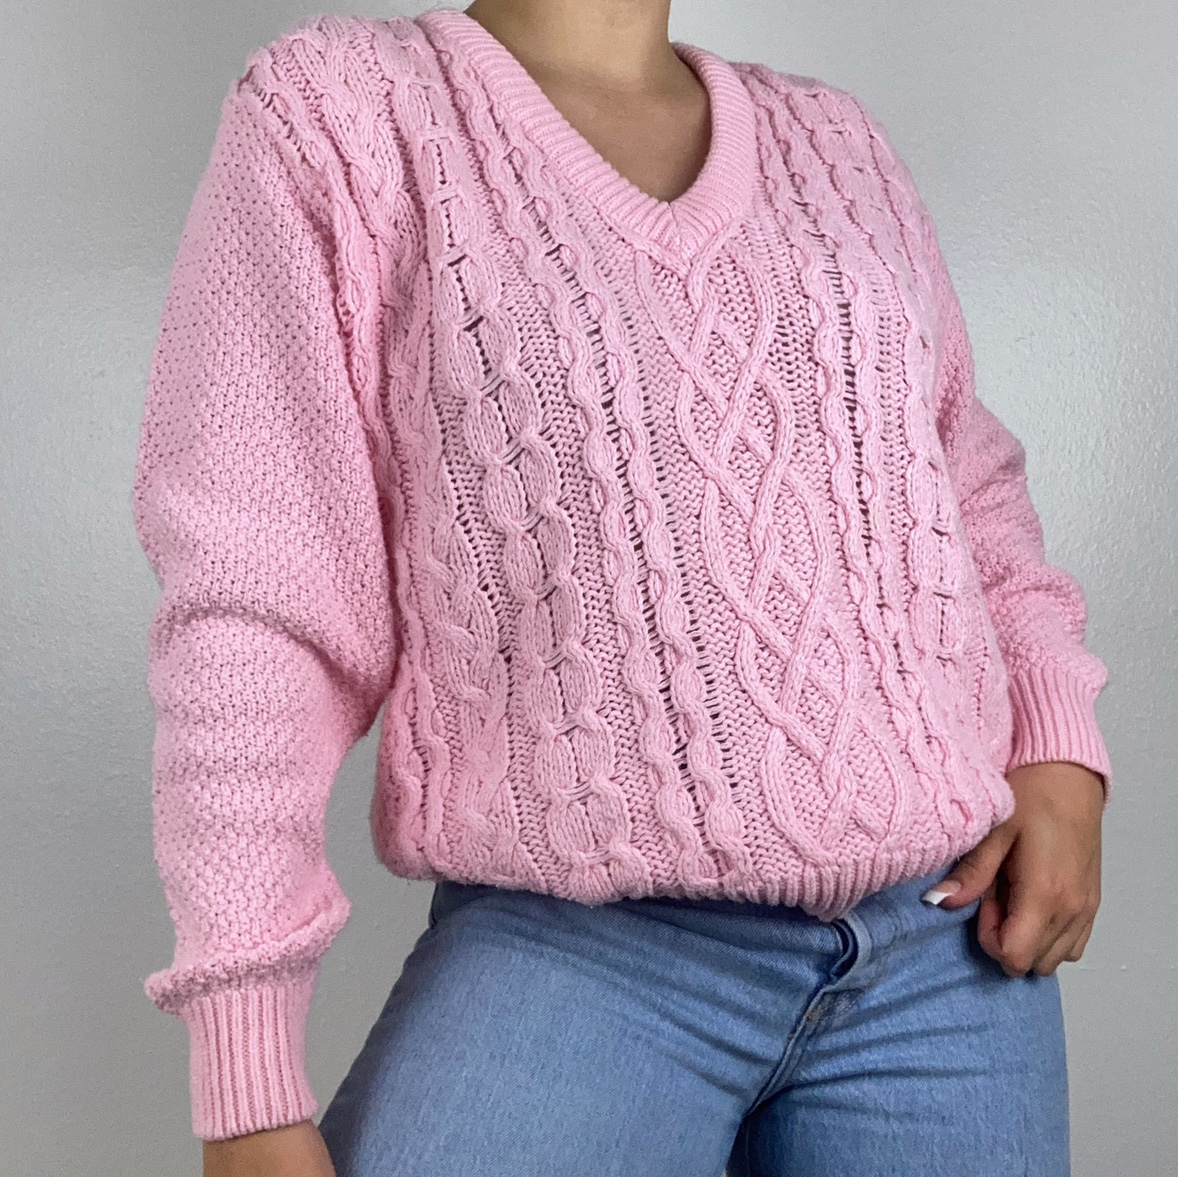 Product Image 1 - 90s knit pink sweater 🧸  The